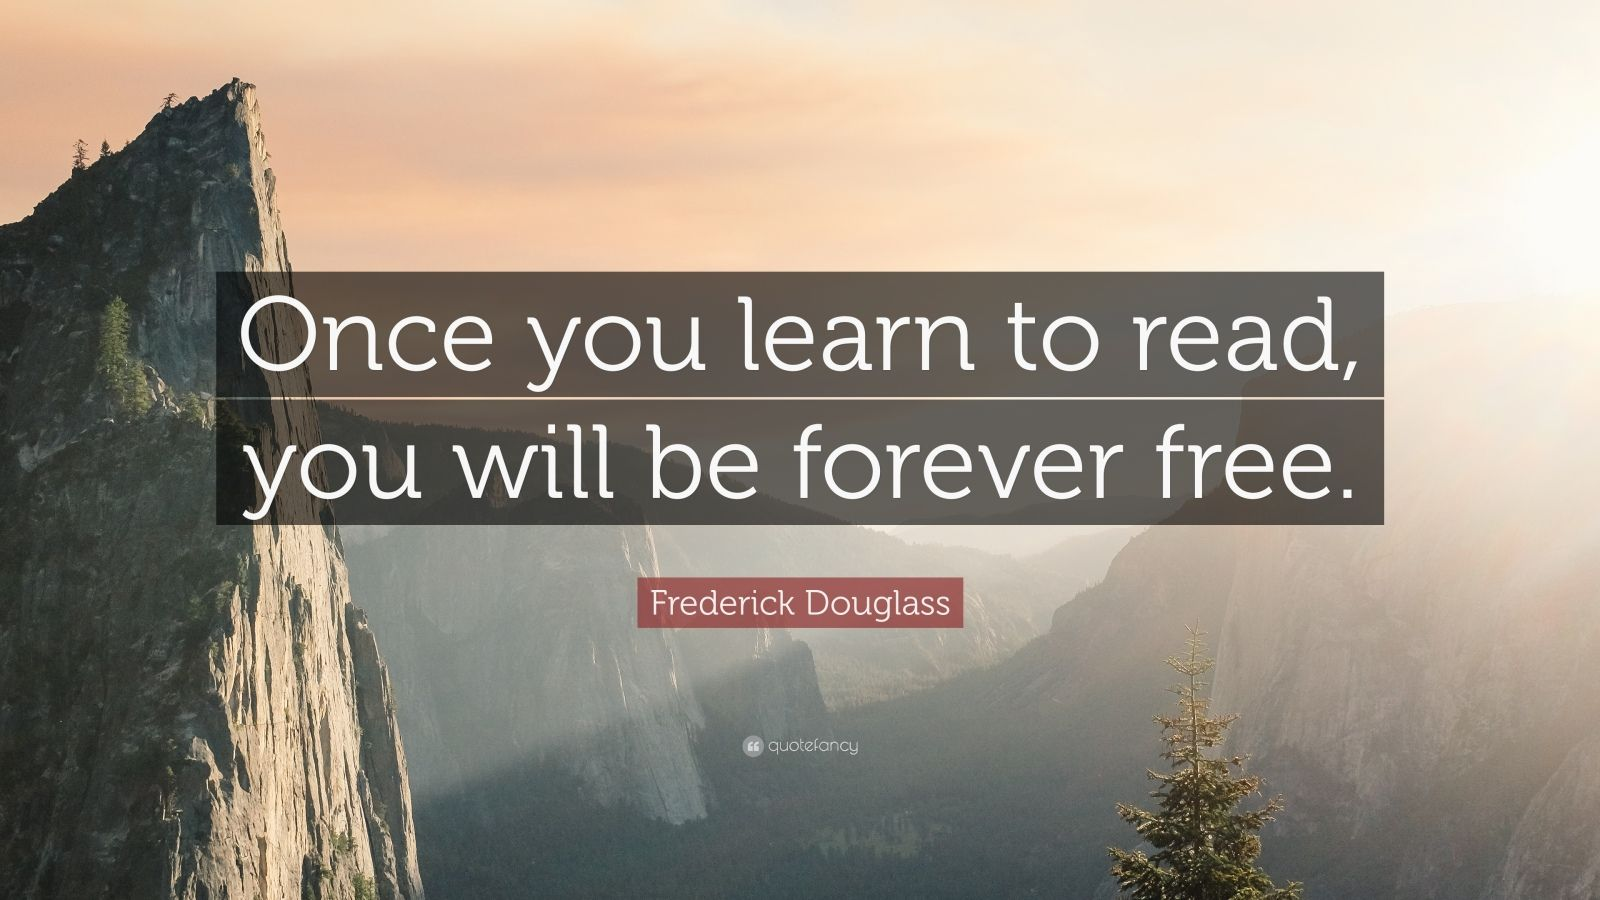 frederick douglass quotes quotefancy frederick douglass quote once you learn to you will be forever